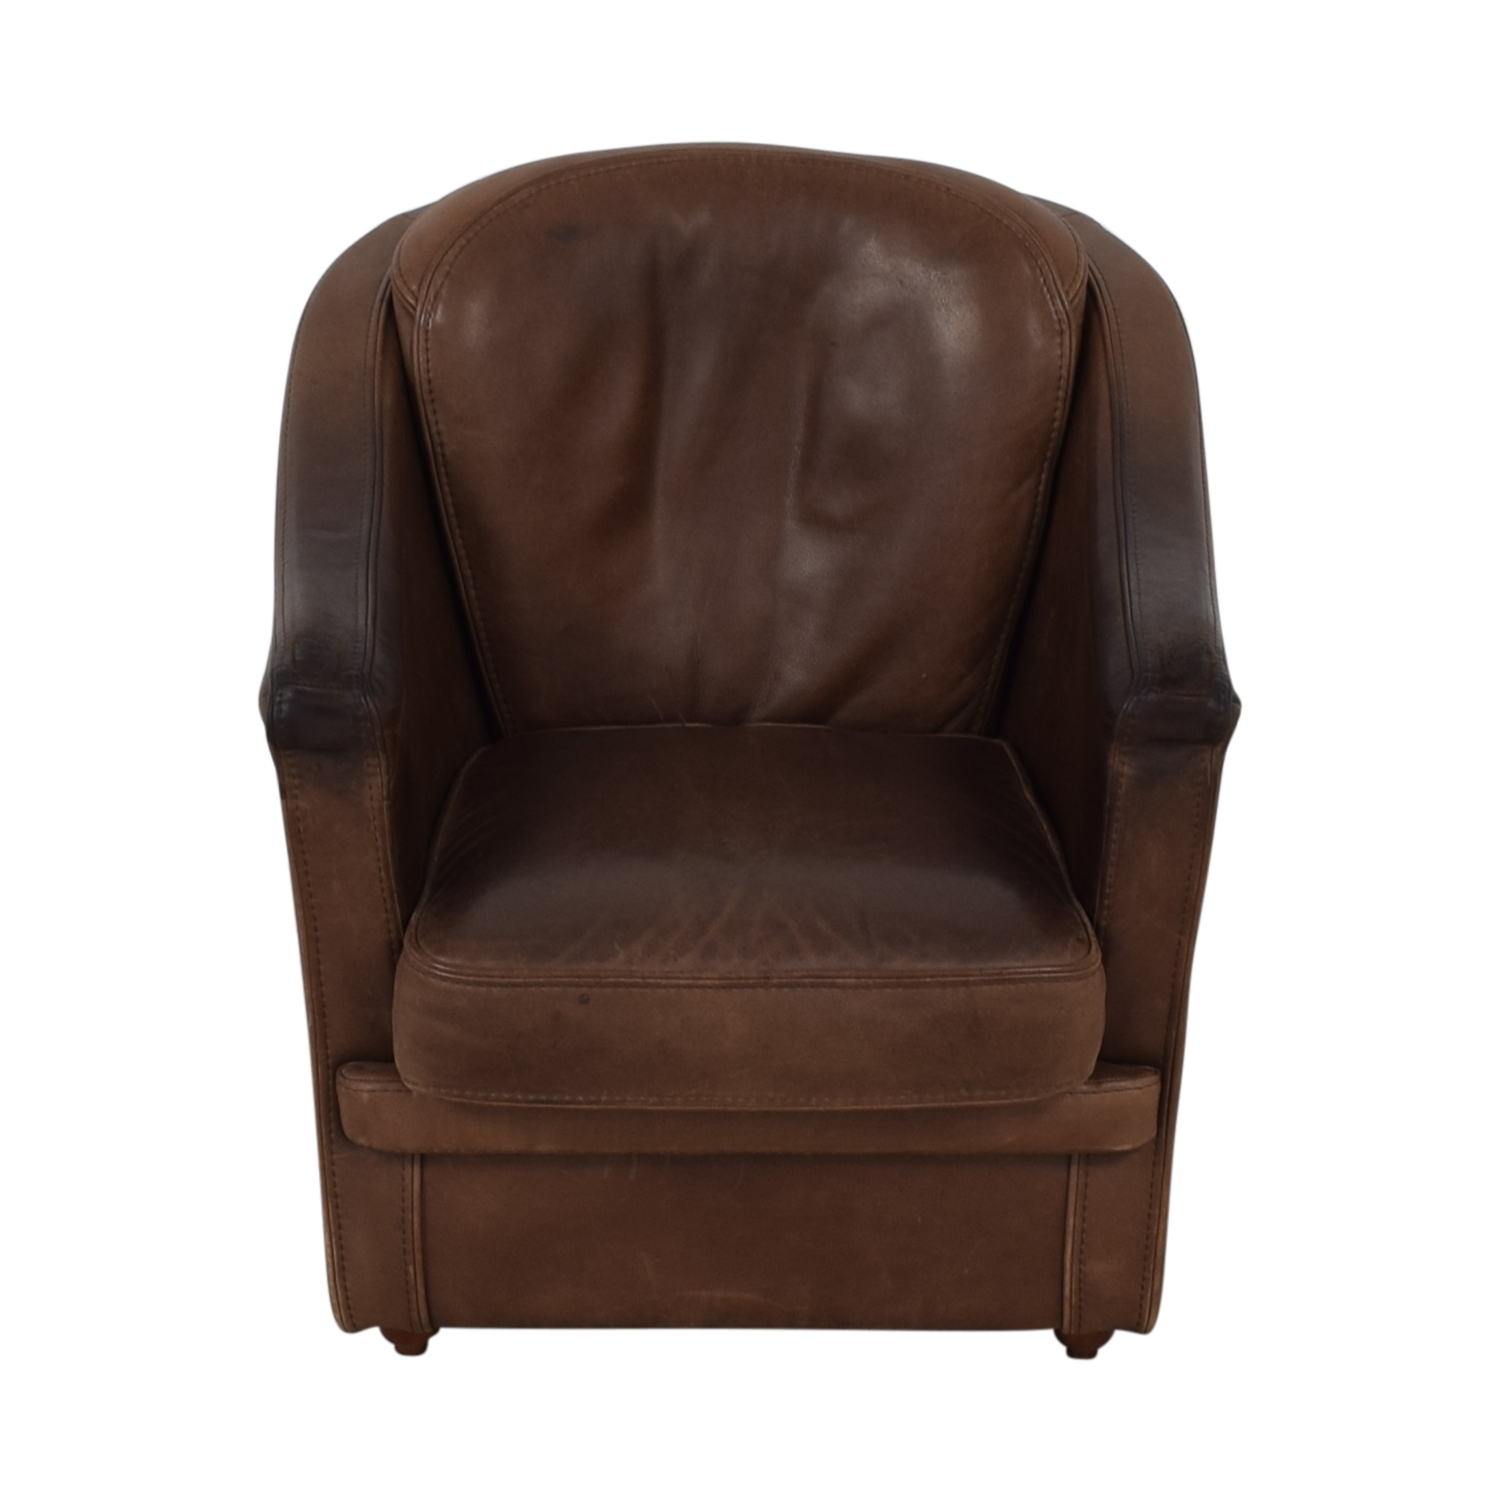 Maurice Villency Maurice Villency Leather Armchair second hand